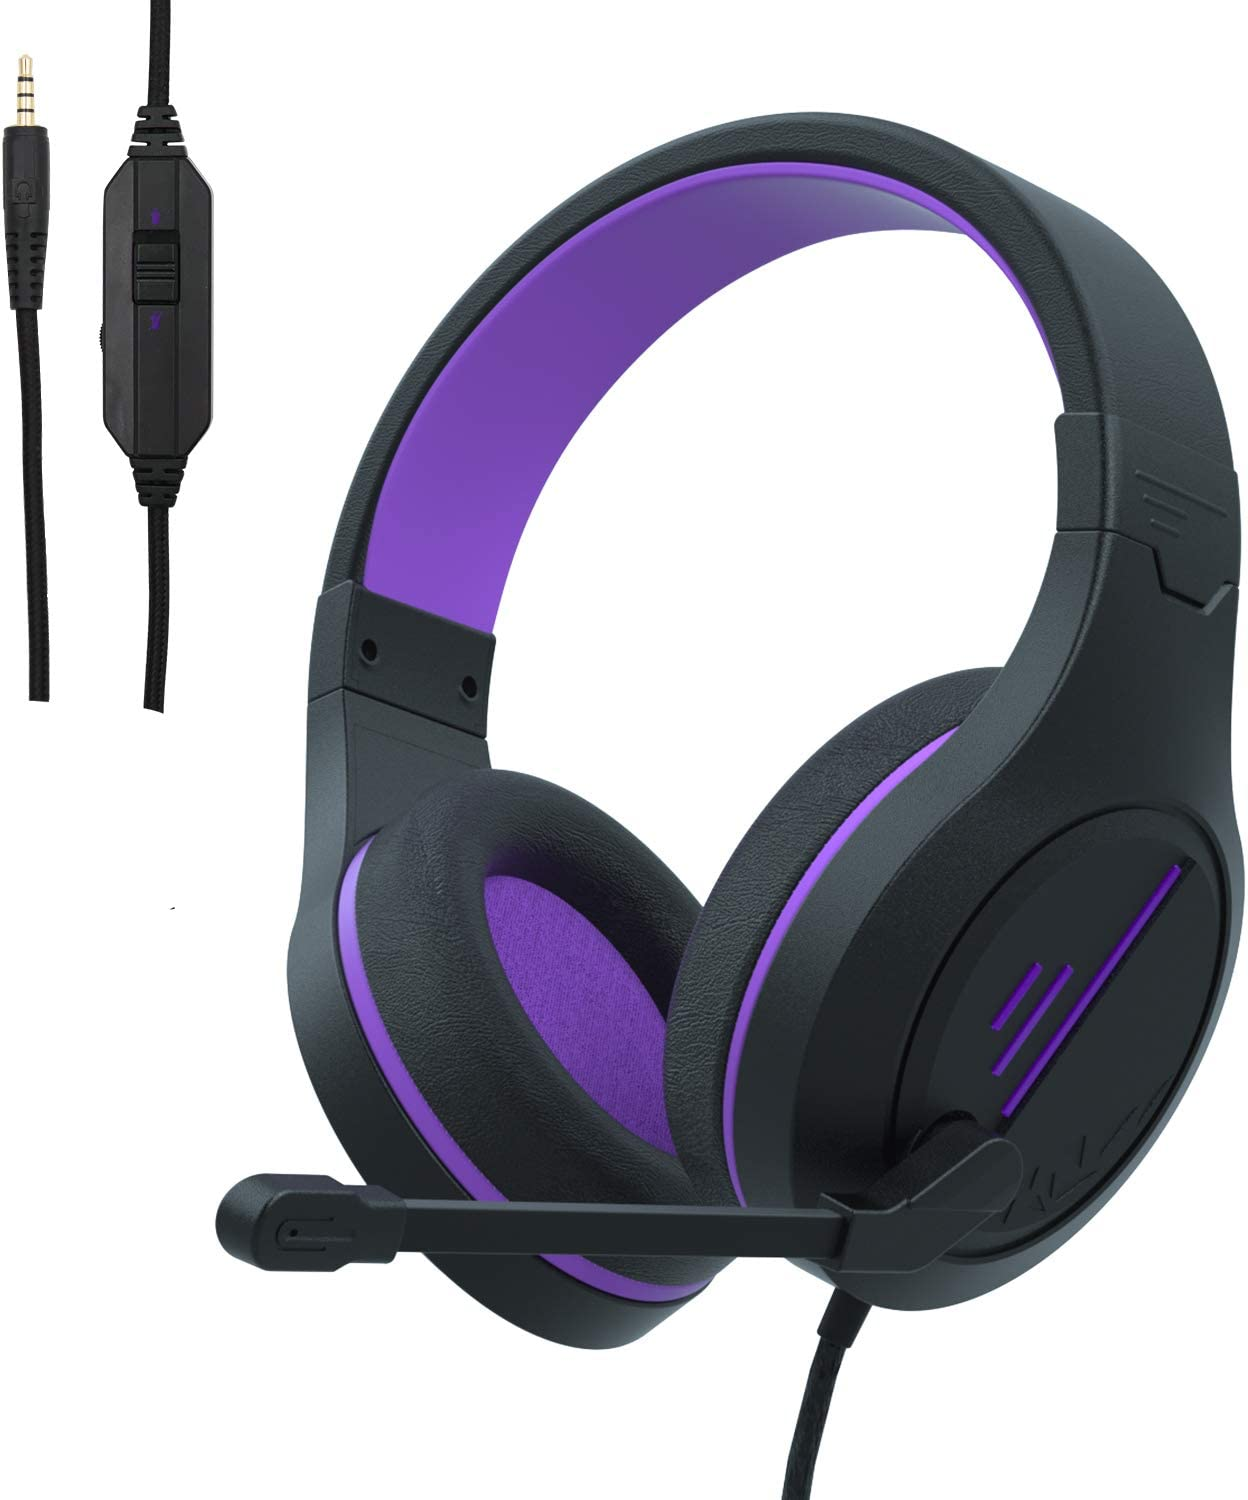 Gaming Headset for Xbox One PS5,PS4 Headset, PC Headphone with Noise Immunity Mic, Friction-Reduction Cable, High Comfort Earmuff-Camo,Over Ear Headphones for Xbox One Controller PC, PS4, Mac(Purple)